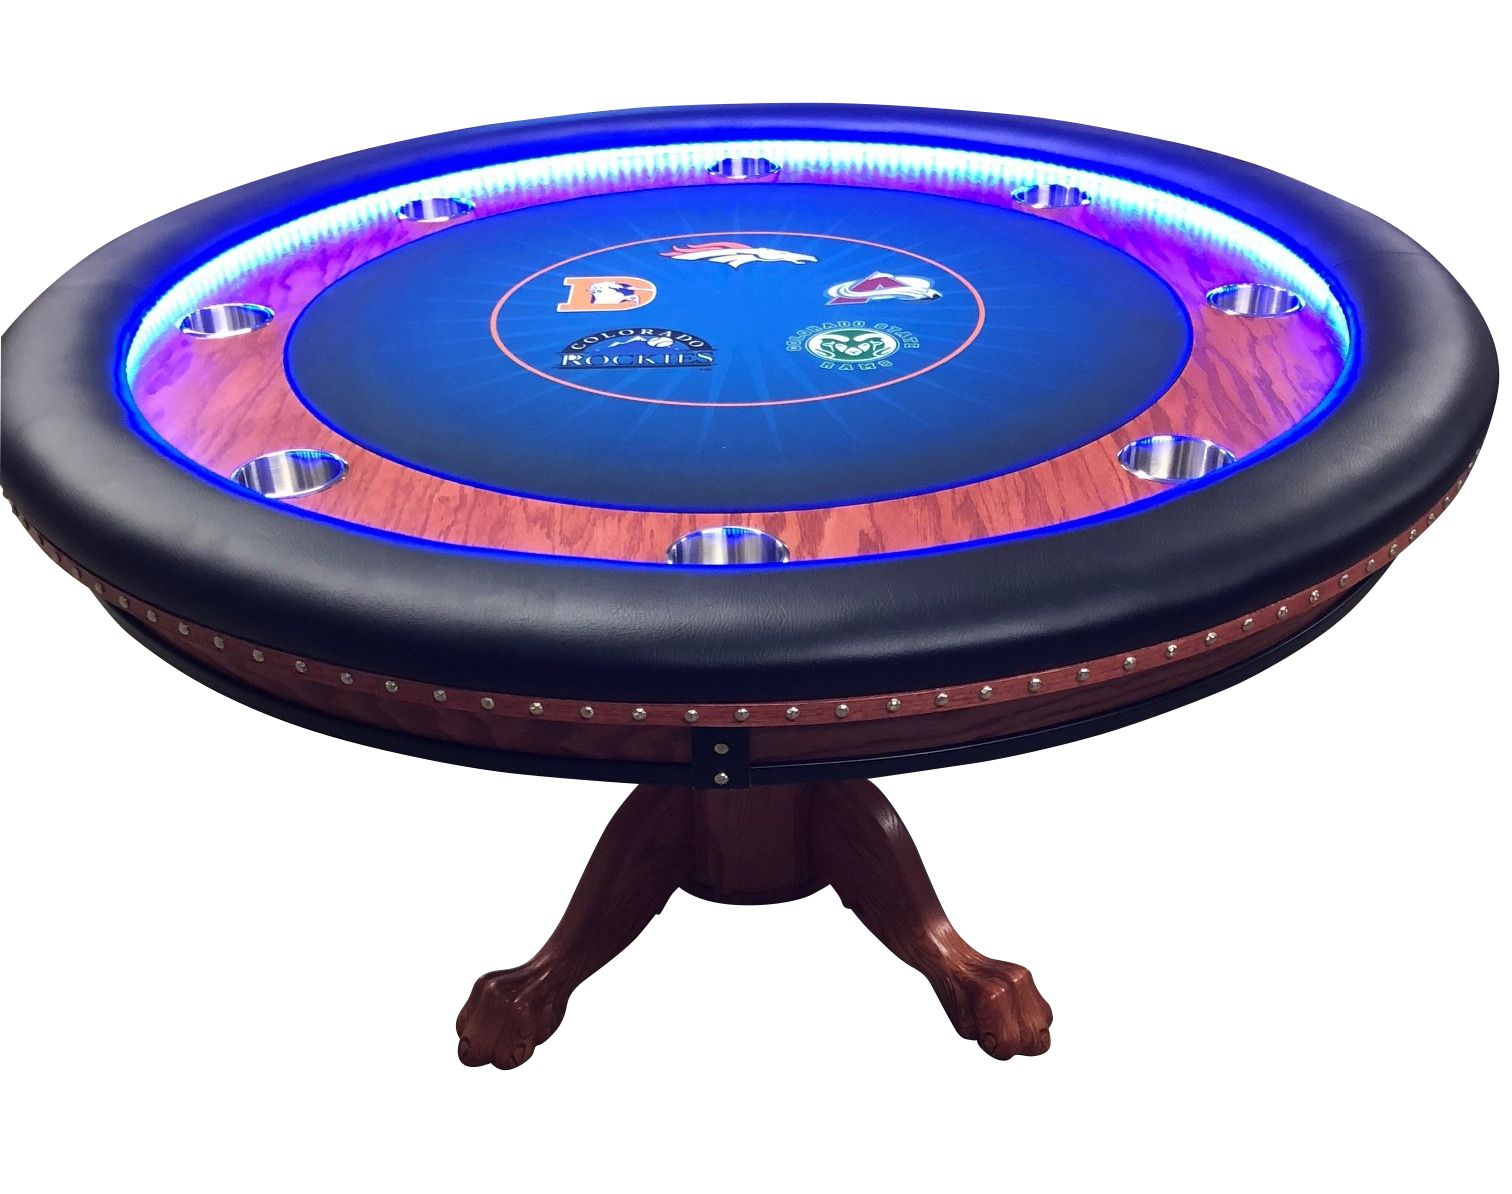 Pin By Thebestpokersite Com On Poker Tables With Lights Custom Poker Tables Poker Table Round Poker Table